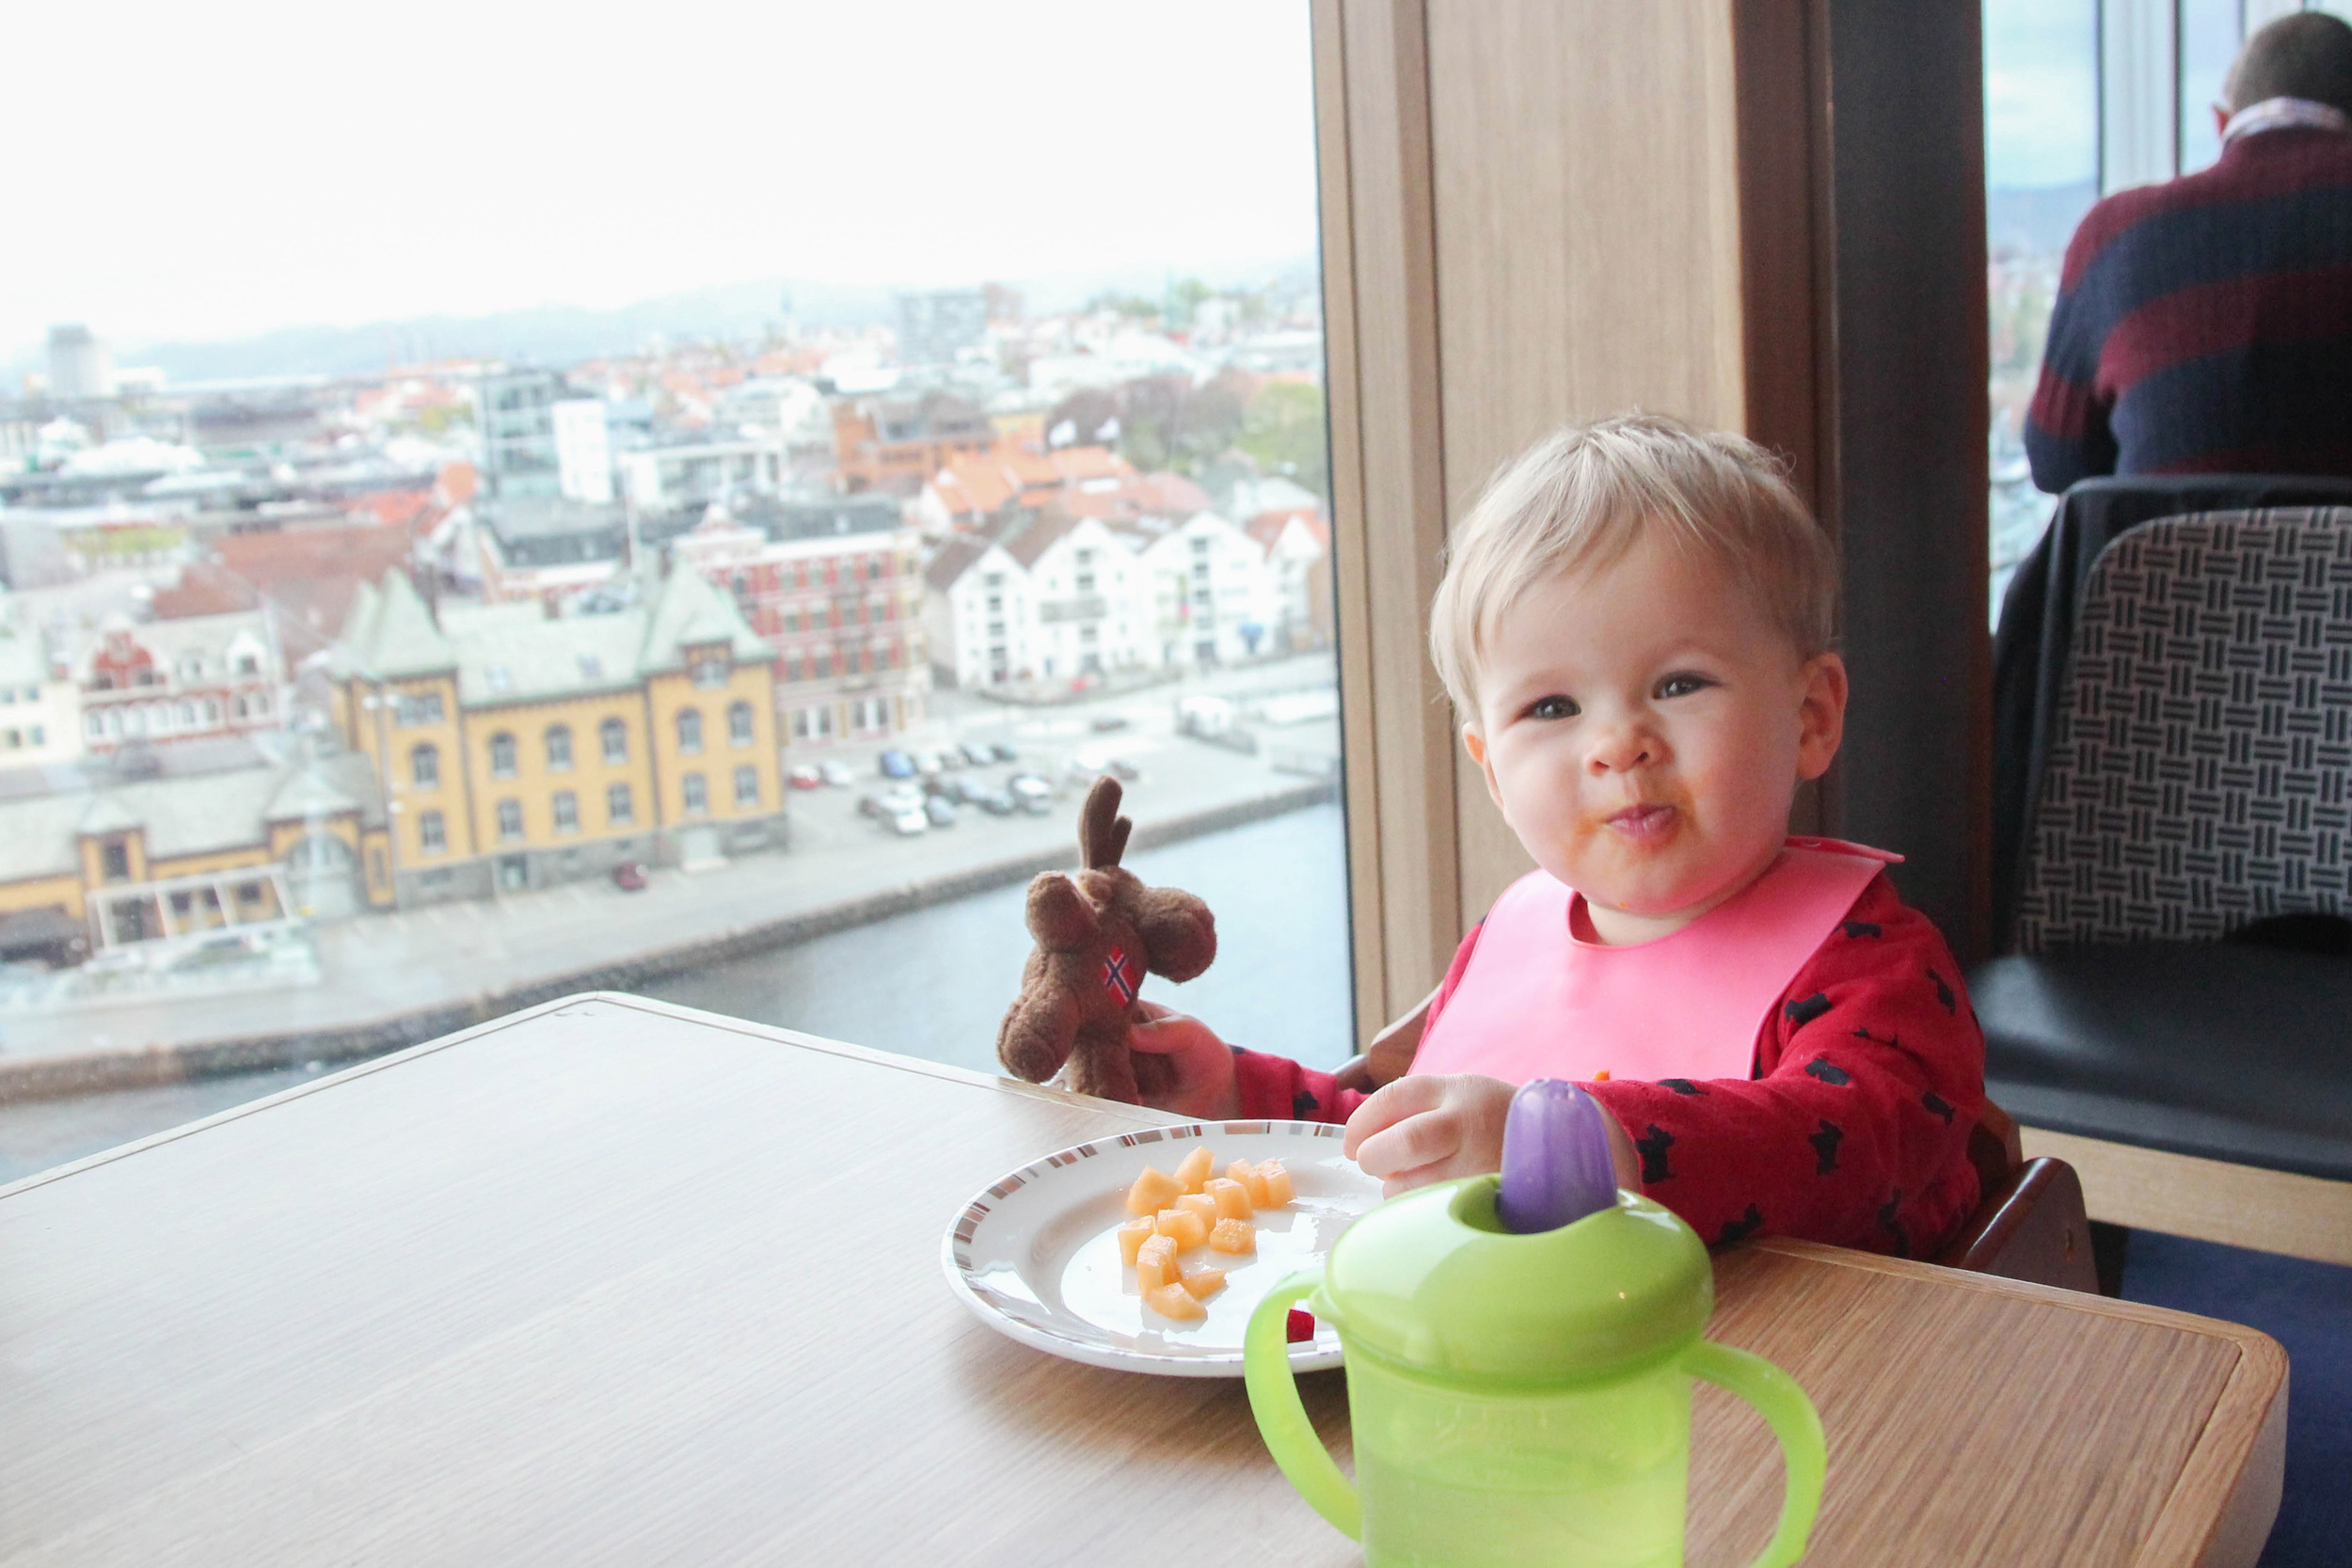 Enjoying some lunch with the city of Stavanger in the background